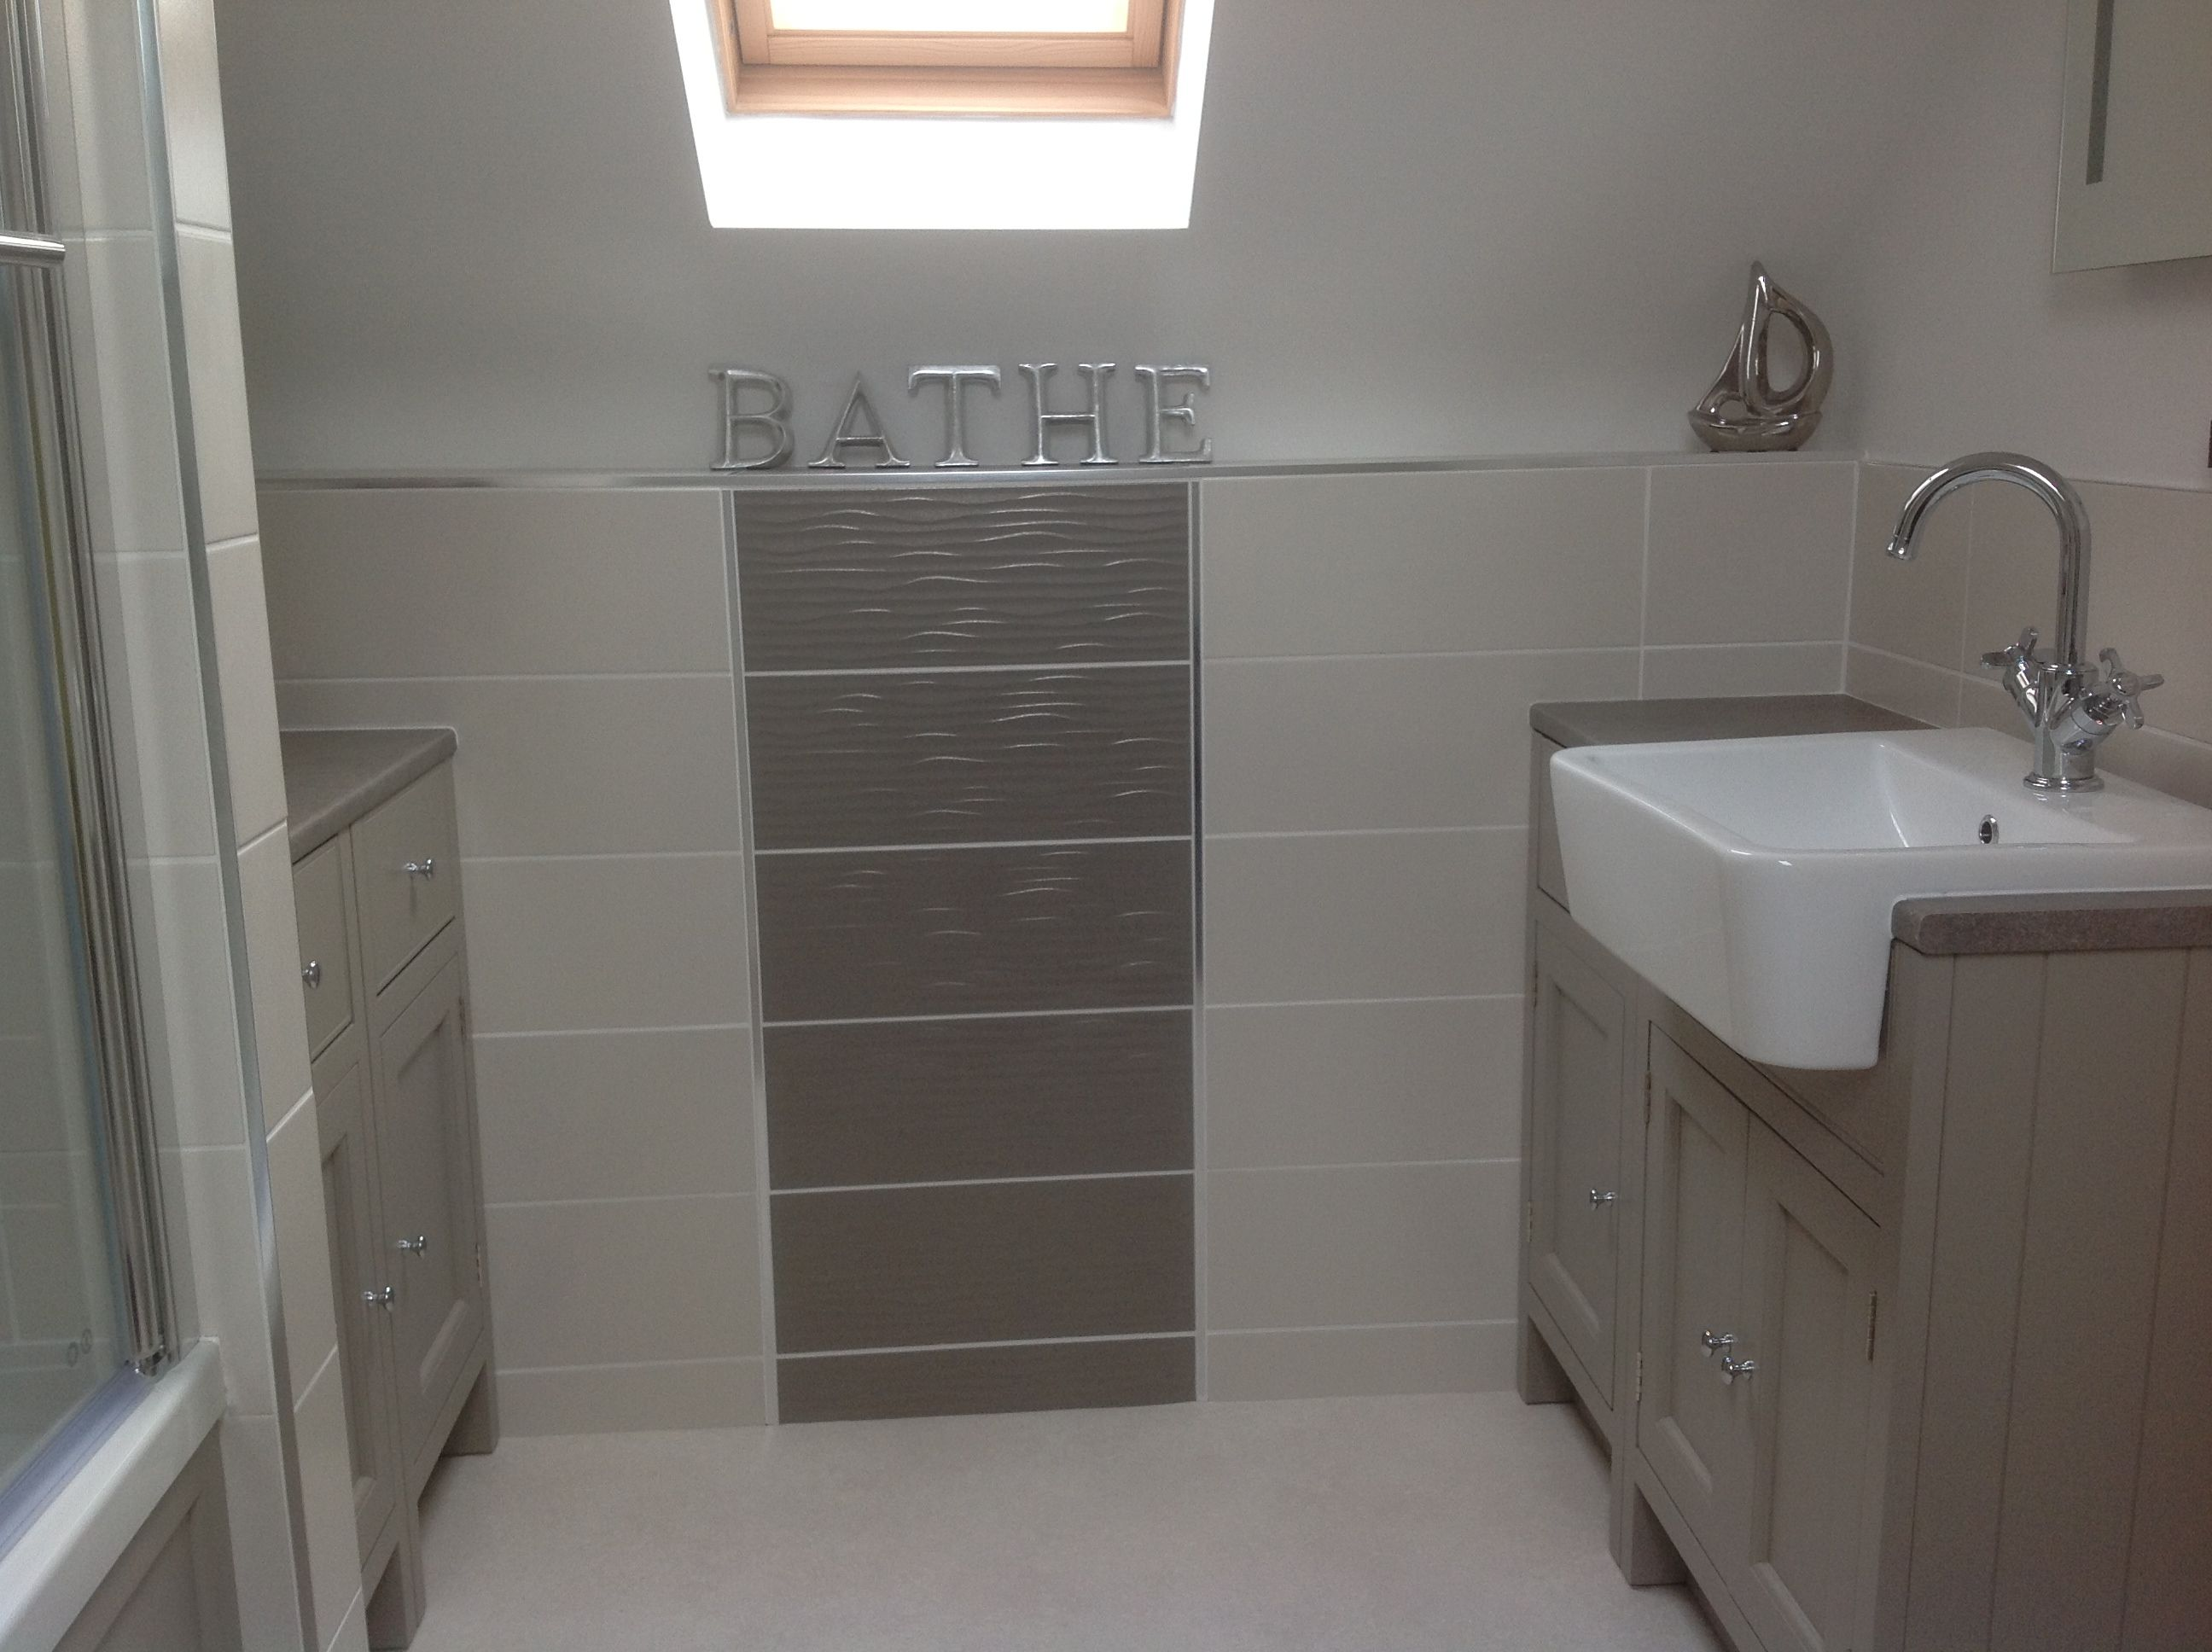 new bathroom with roper rhodes fittings hampton range